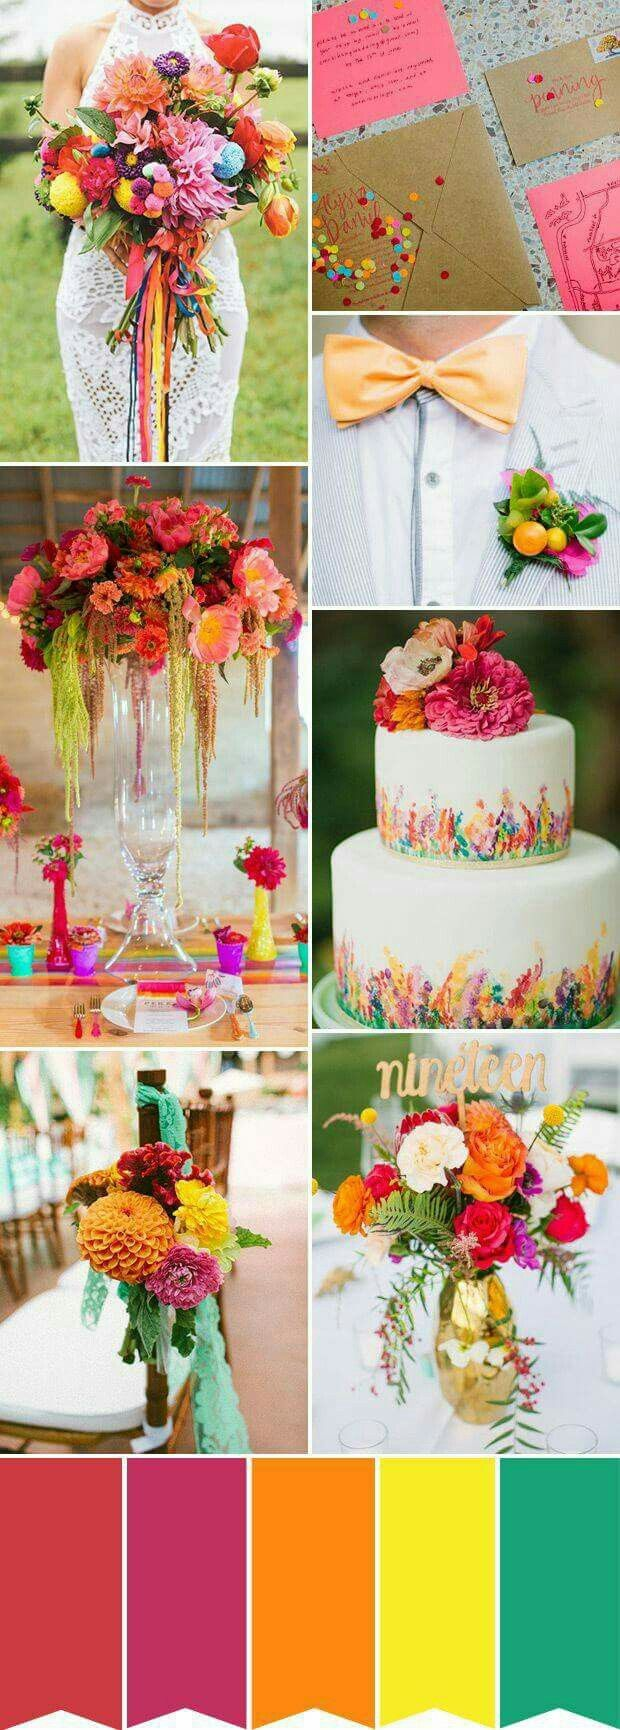 2122 best wedding love images on pinterest wedding ideas colorful rustic summer wedding inspiration with red yellow and green junglespirit Gallery